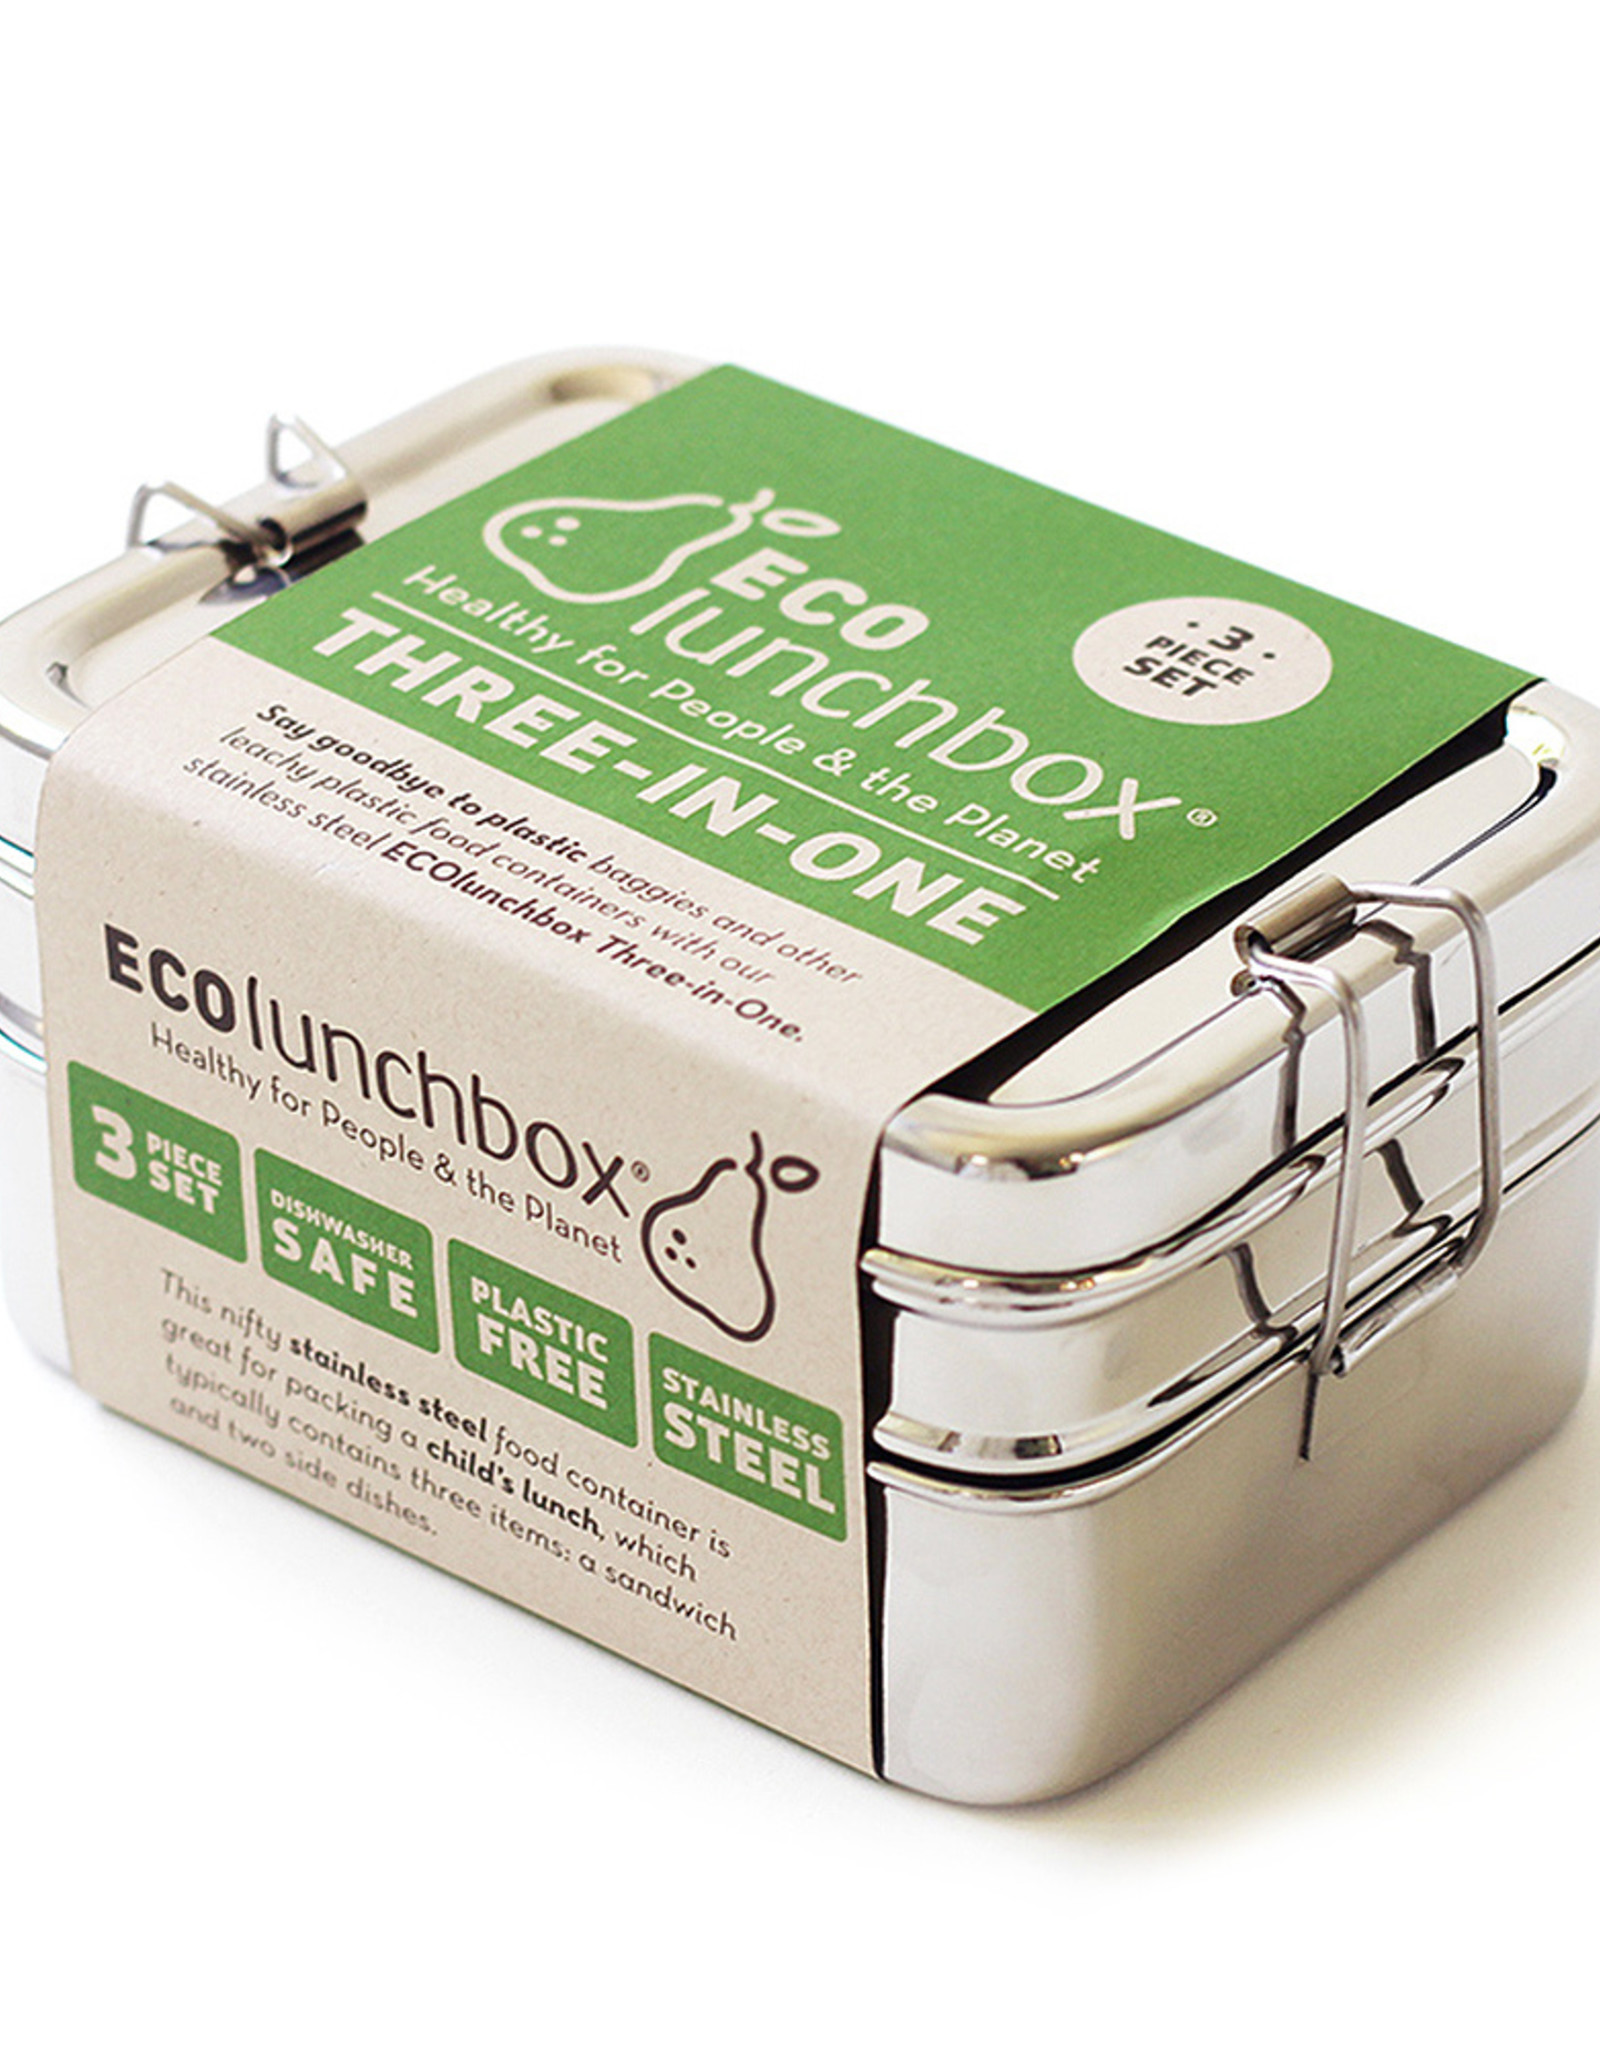 Eco lunchbox Eco lunchbox 3 in 1